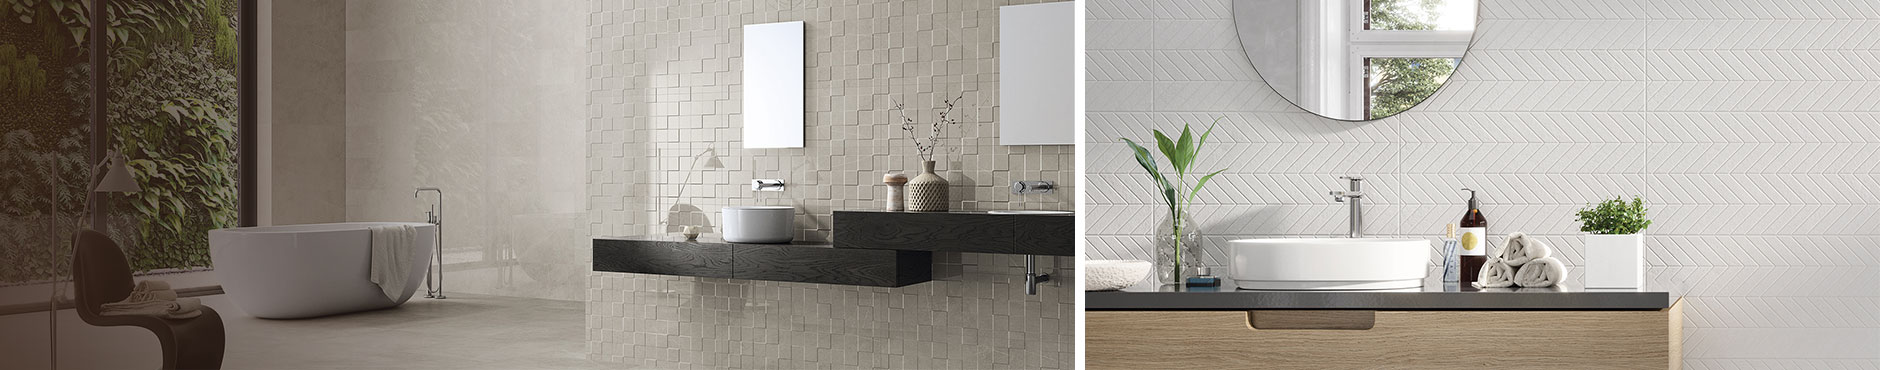 Best selling stone effect tiles